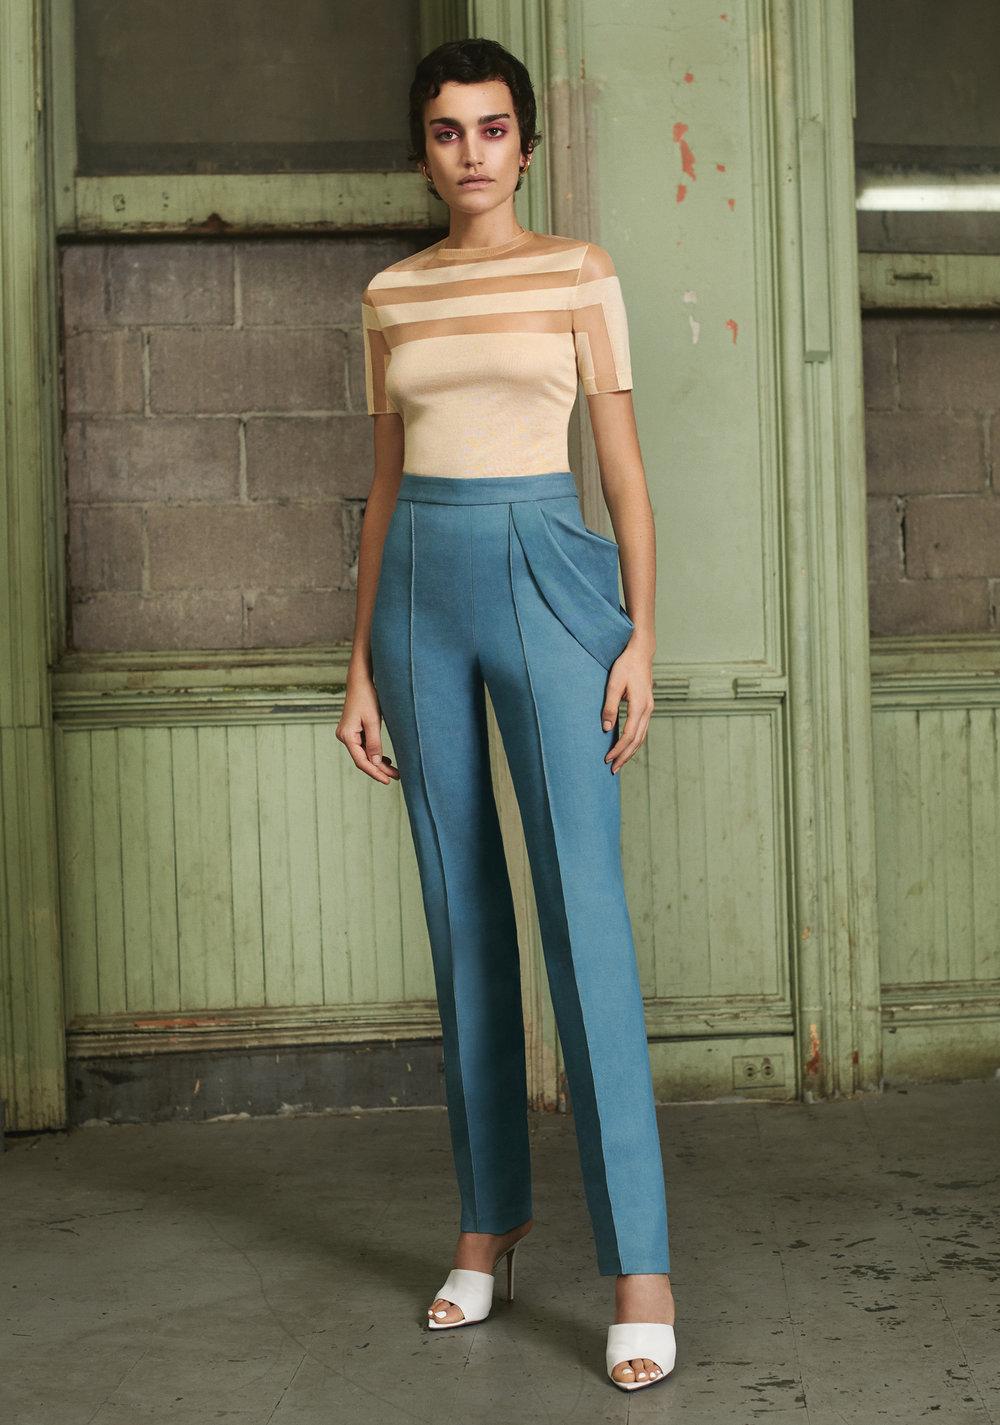 JULIANNA-BASS-SS19-04-Ryan-Sweater-Katarina-Trouser.jpg